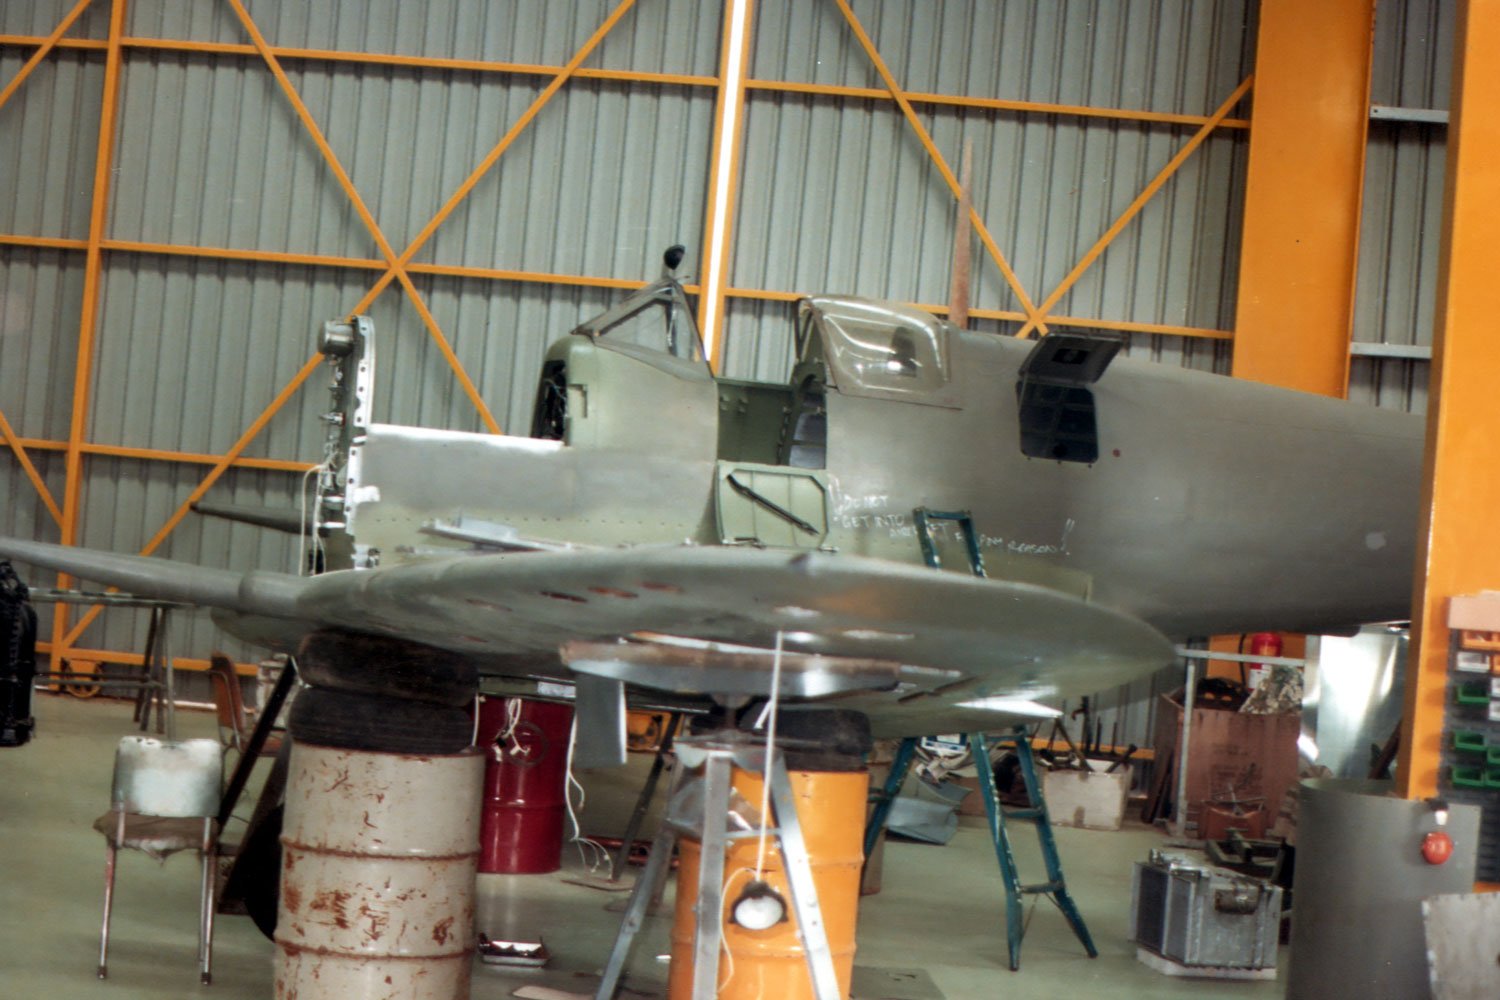 Spitfire VH-HET undergoing restoration by Col Pay 1983